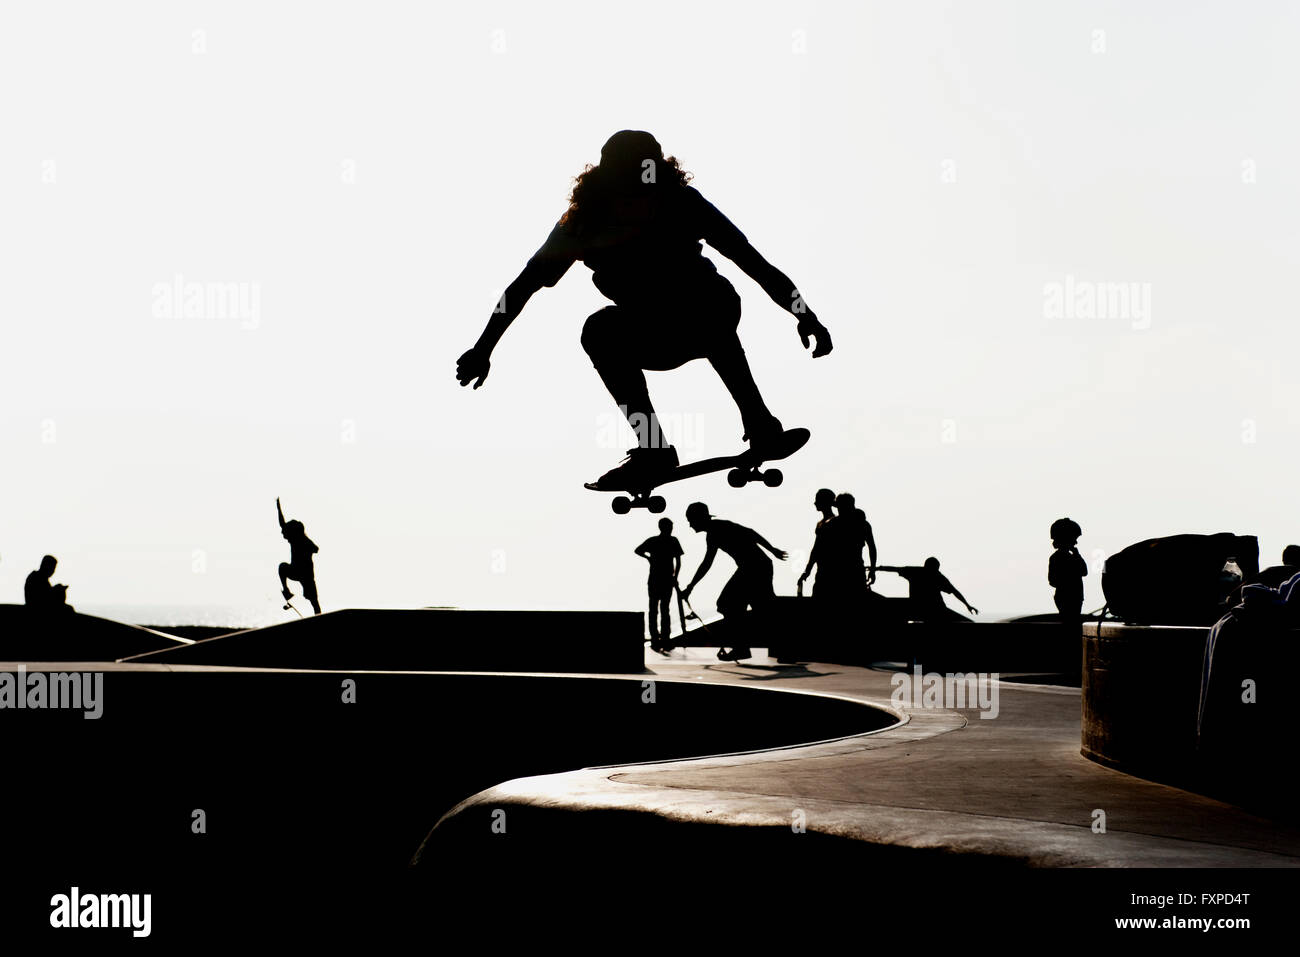 Skateboarder at skate park, silhouetted - Stock Image